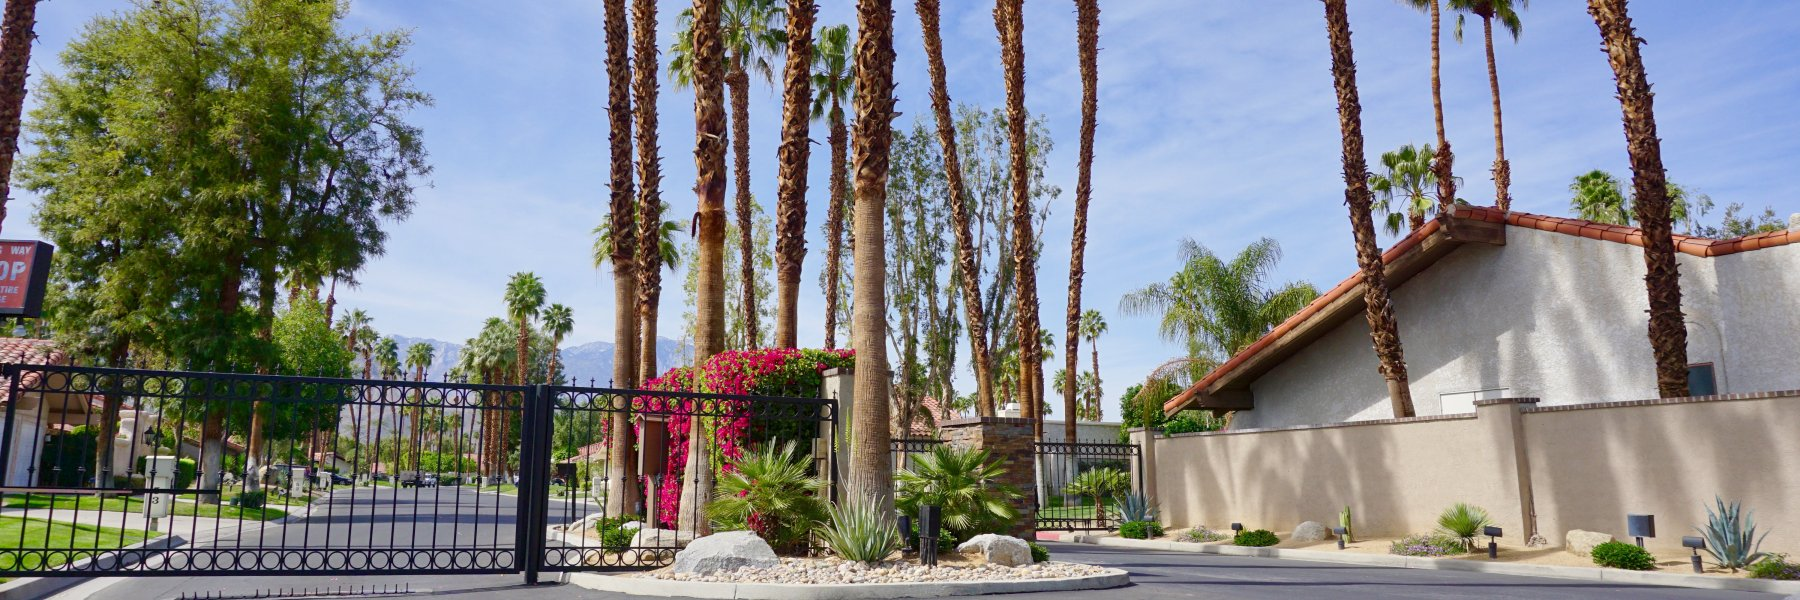 Country Club Estates is a community of homes in Rancho Mirage California